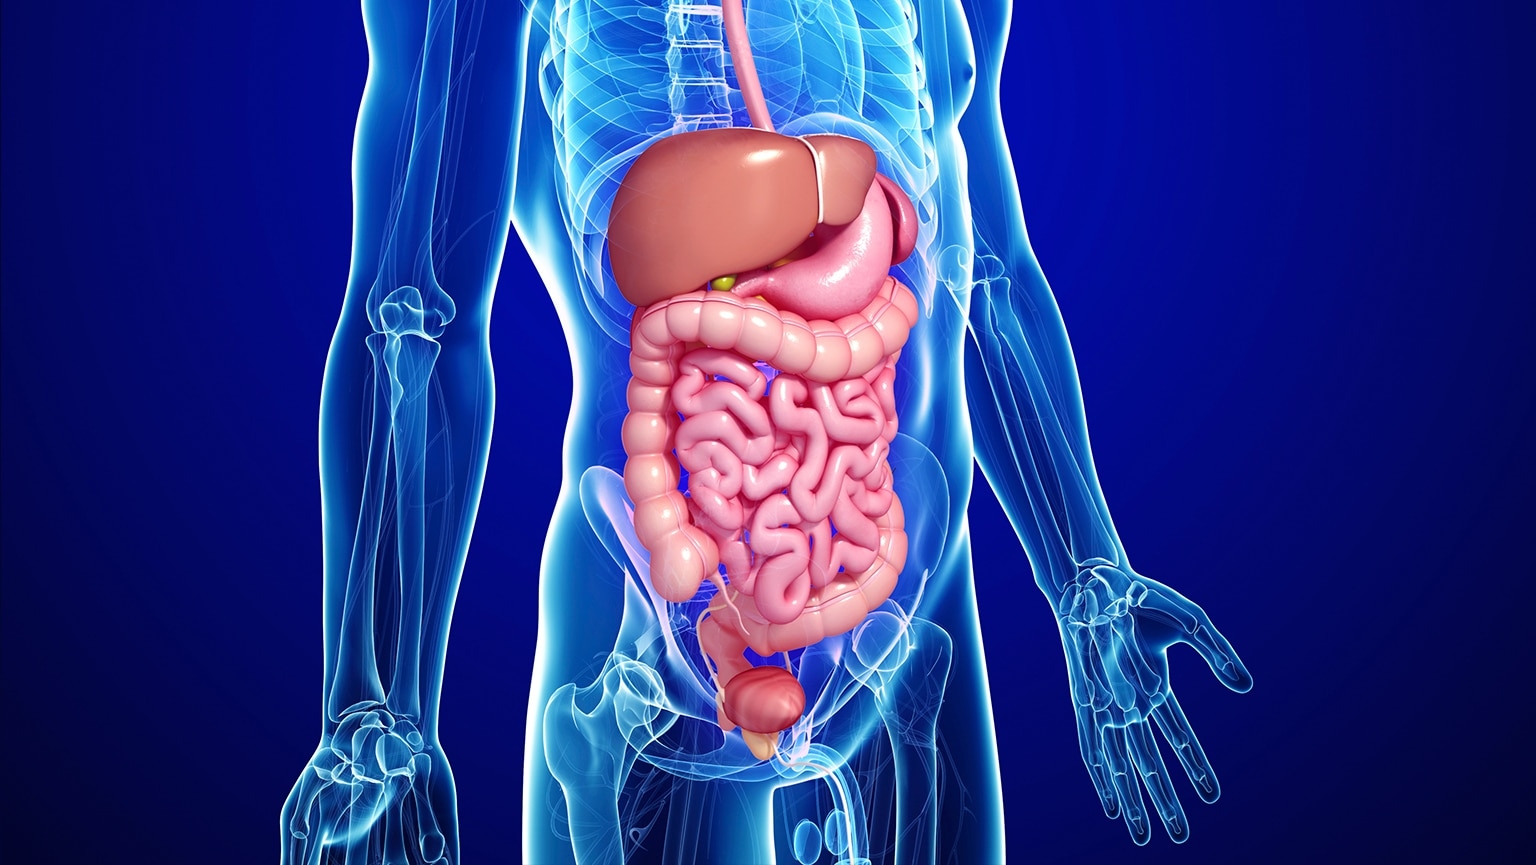 Our Underappreciated Digestive Tract